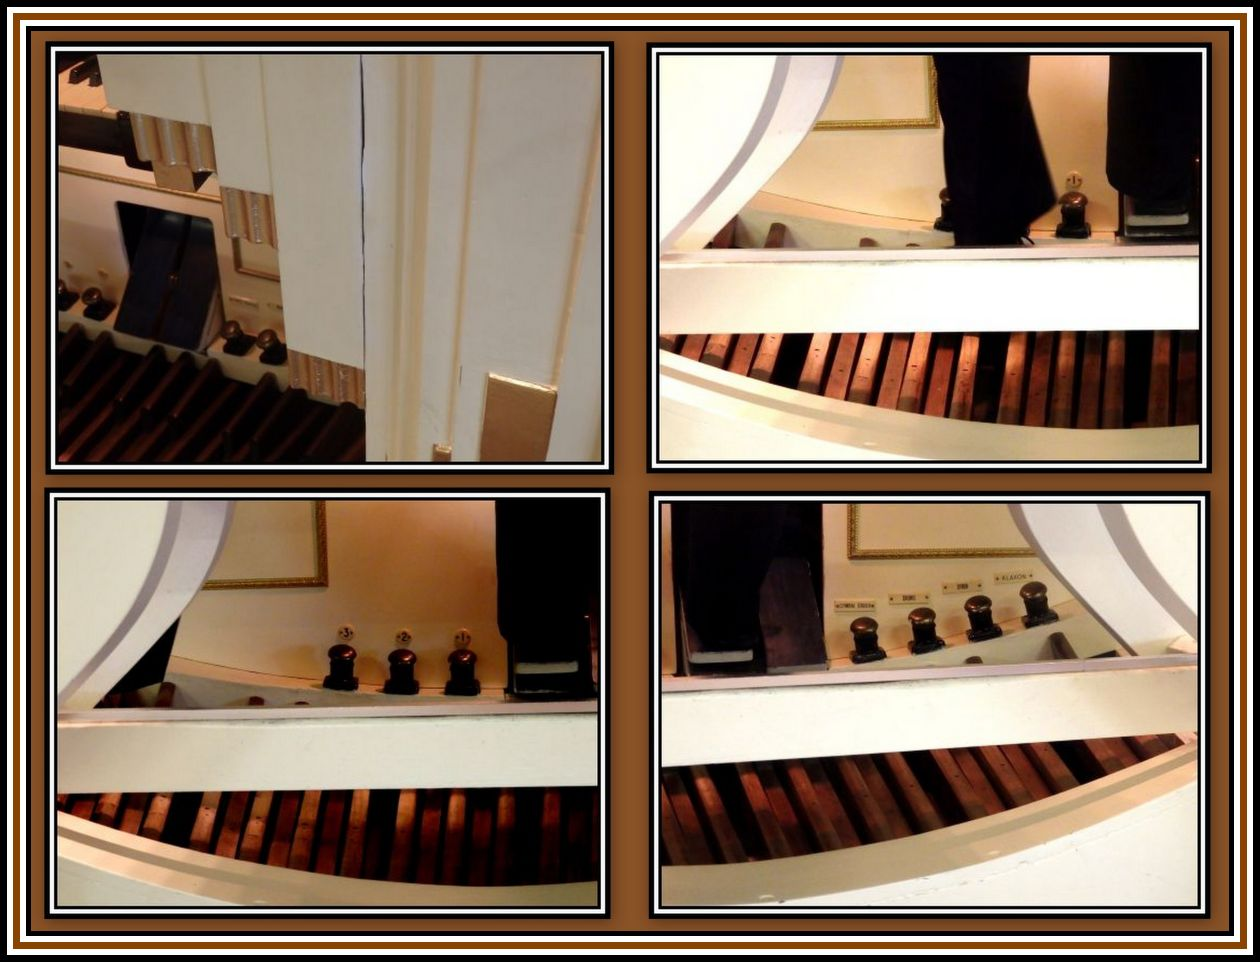 Foot Pedals Collage